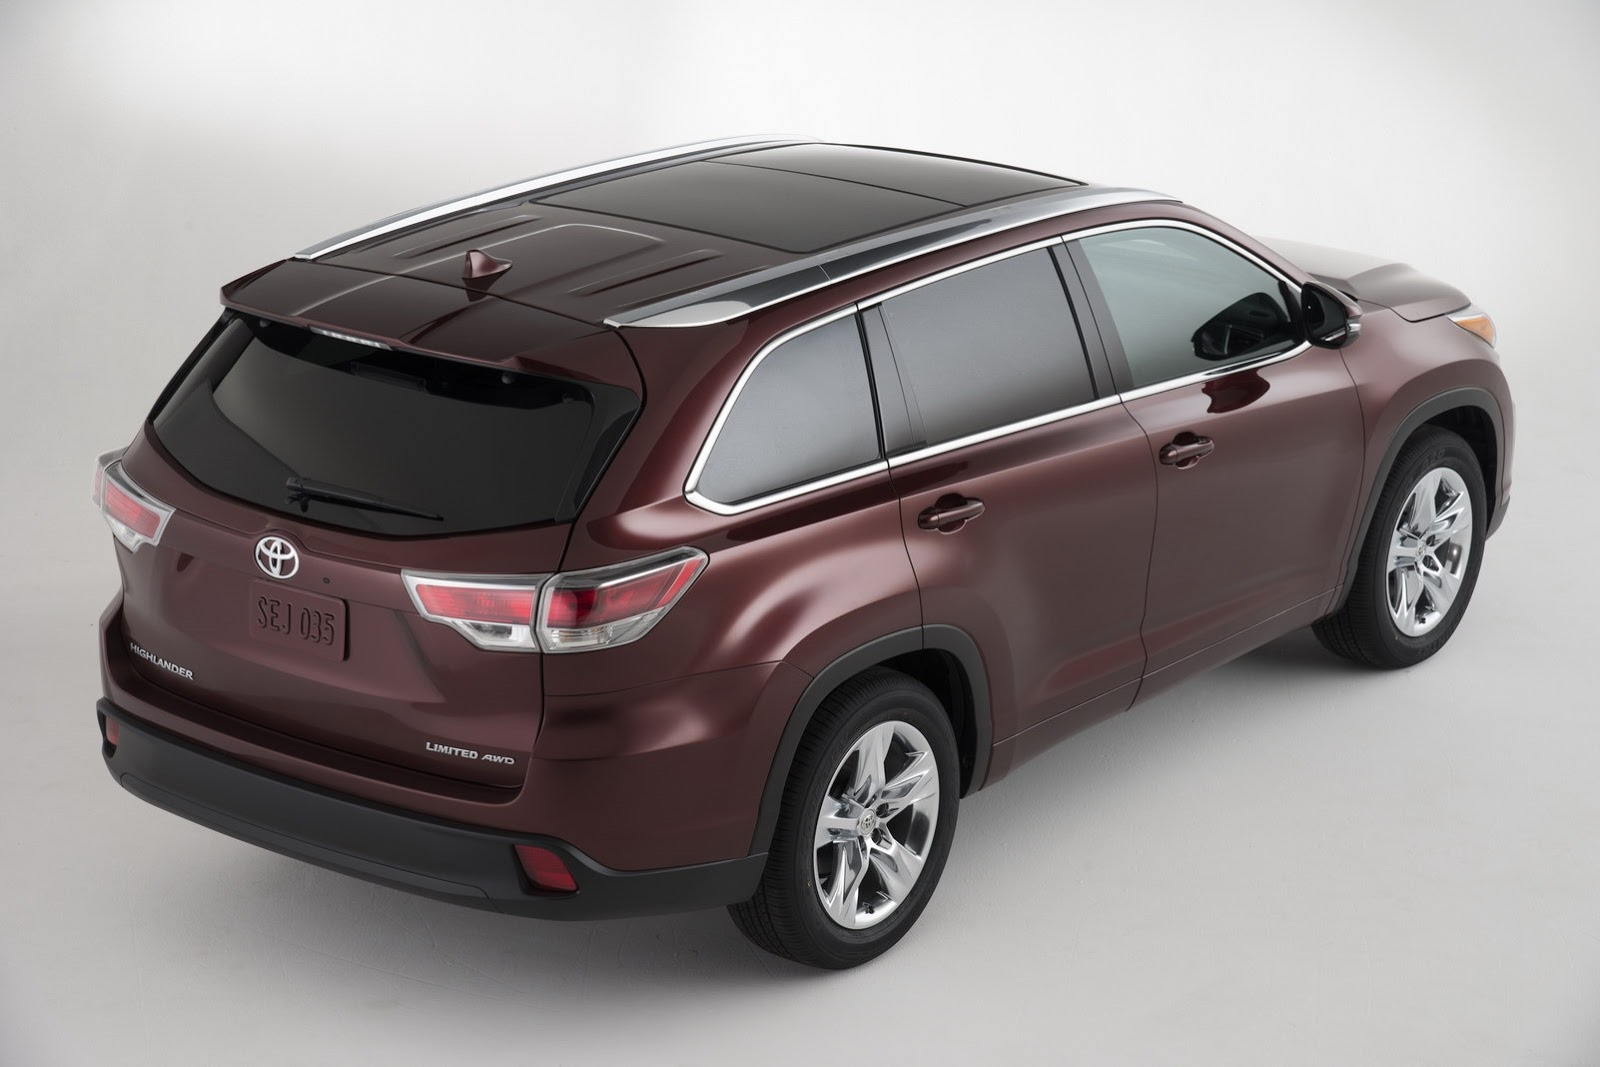 Meet the 2014 toyota highlander autoevolution Toyota highlander 2014 exterior